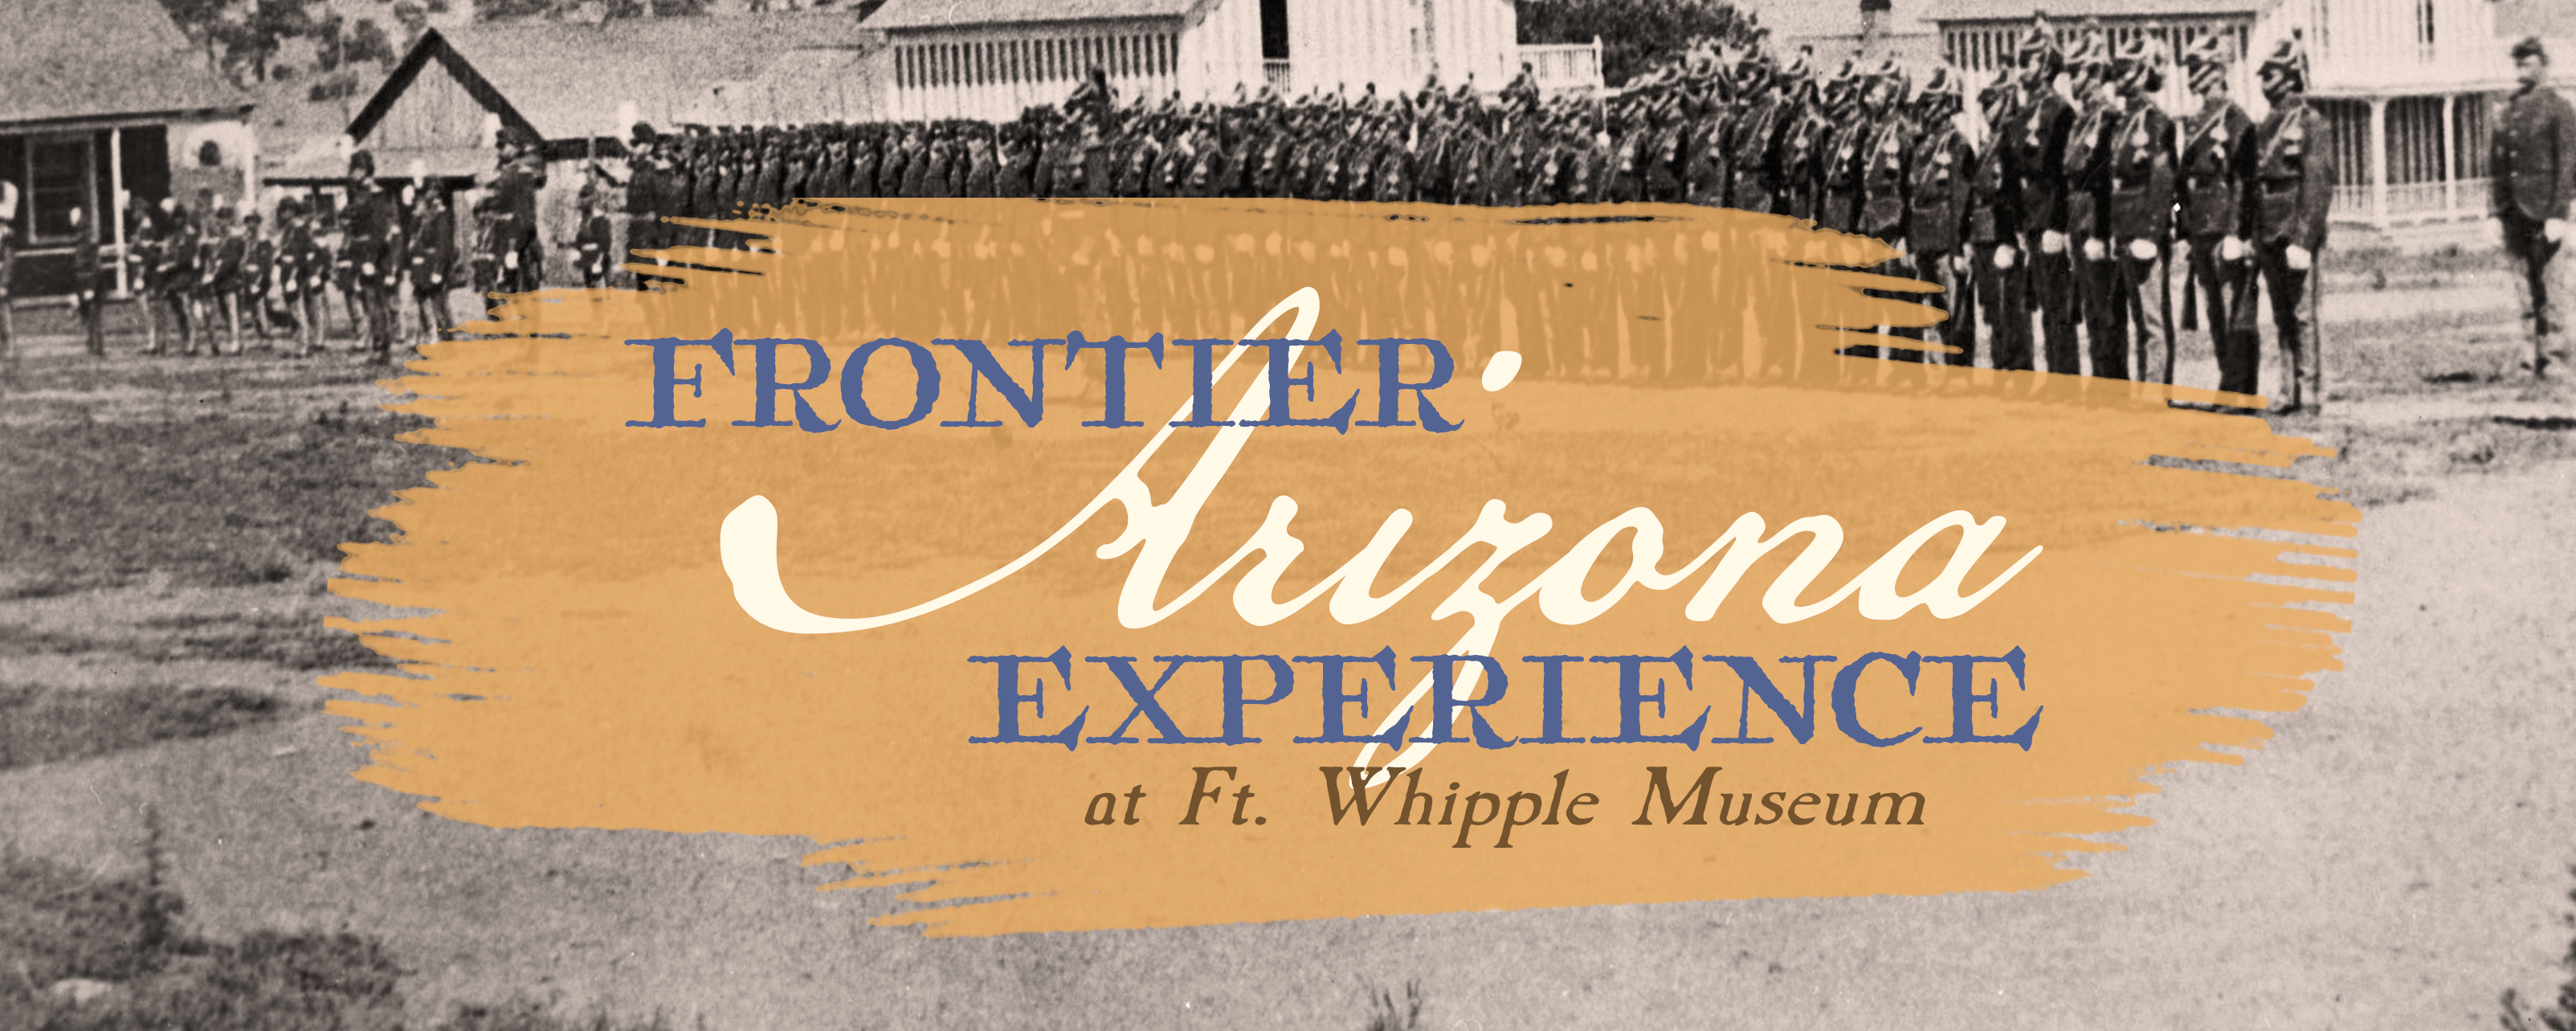 00ef782f13f94c Learn about Fort Whipple s important founding influence in the Prescott area